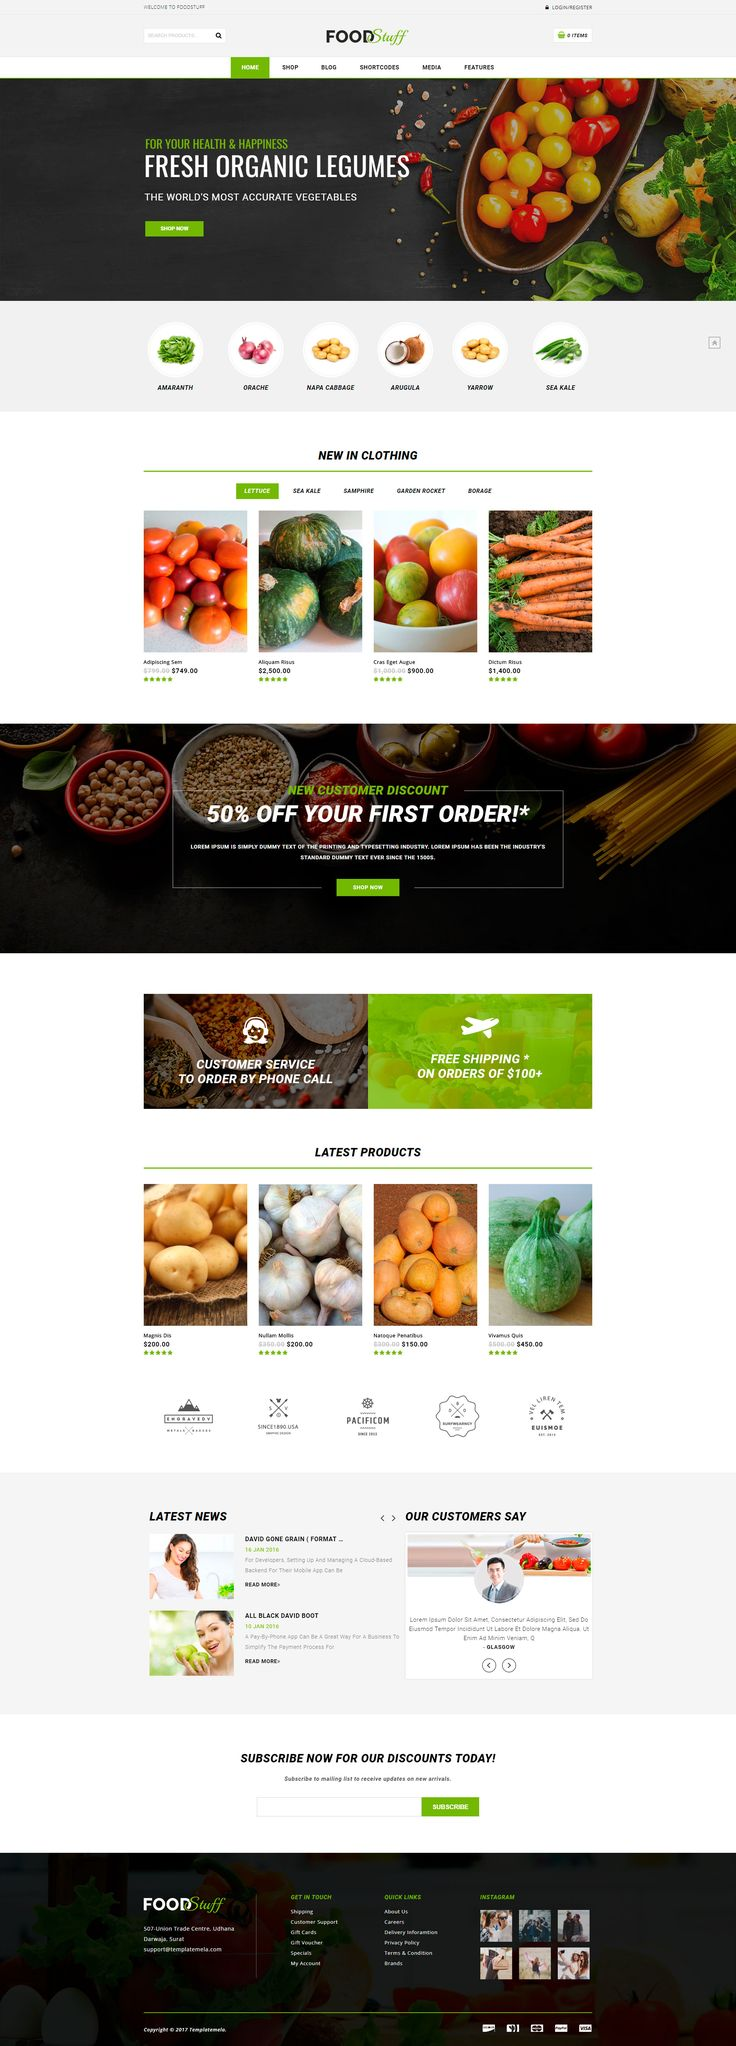 Food Stuff is #WordPress #ecommerce #theme based on #WooCommerce plugin. It is suitable for food, vegetables, restaurants, fresh market, sports, jewelry and accessories store. It is also multipurpose theme which can be used for any kind of online store. Food Stuff WooCommerce theme is looking good with it's clean and fresh #design. All sub pages are customized. #website #wordpress